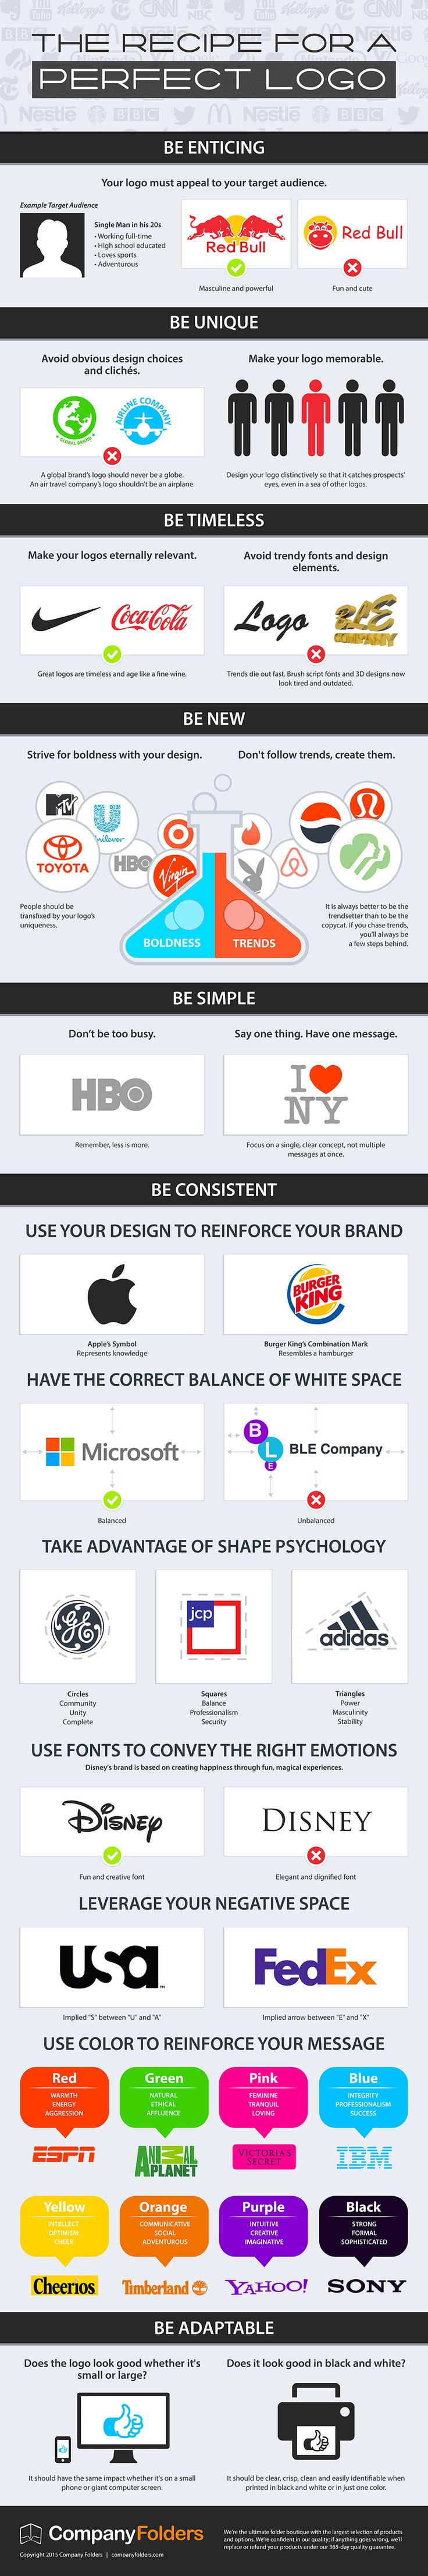 [INFOGRAPHIC] How to Design the Perfect Logo: Enticing; Unique; Timeless; Simple; Consistent; Balanced; Adaptable; Details.